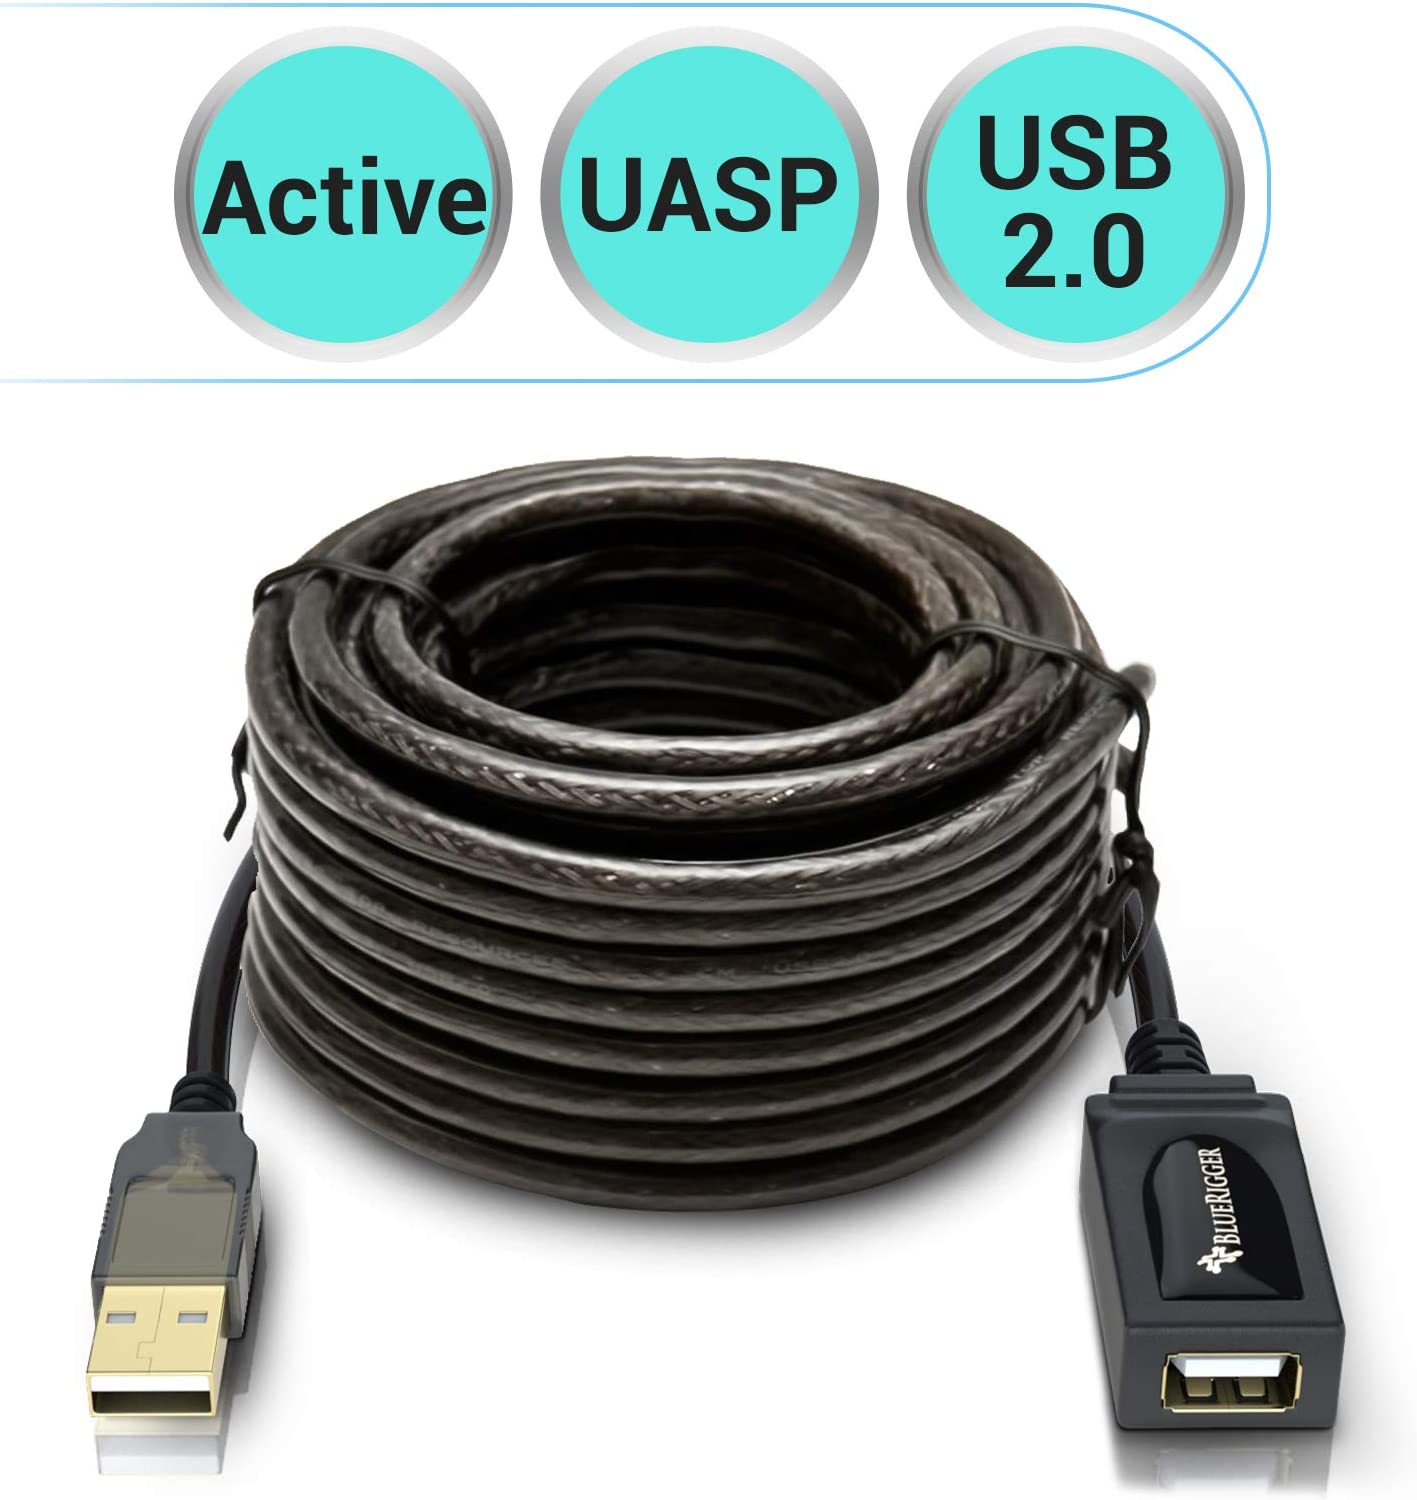 USB 2.0 Hi-Speed Repeater Extension Cable Lead 25m ~82 feet